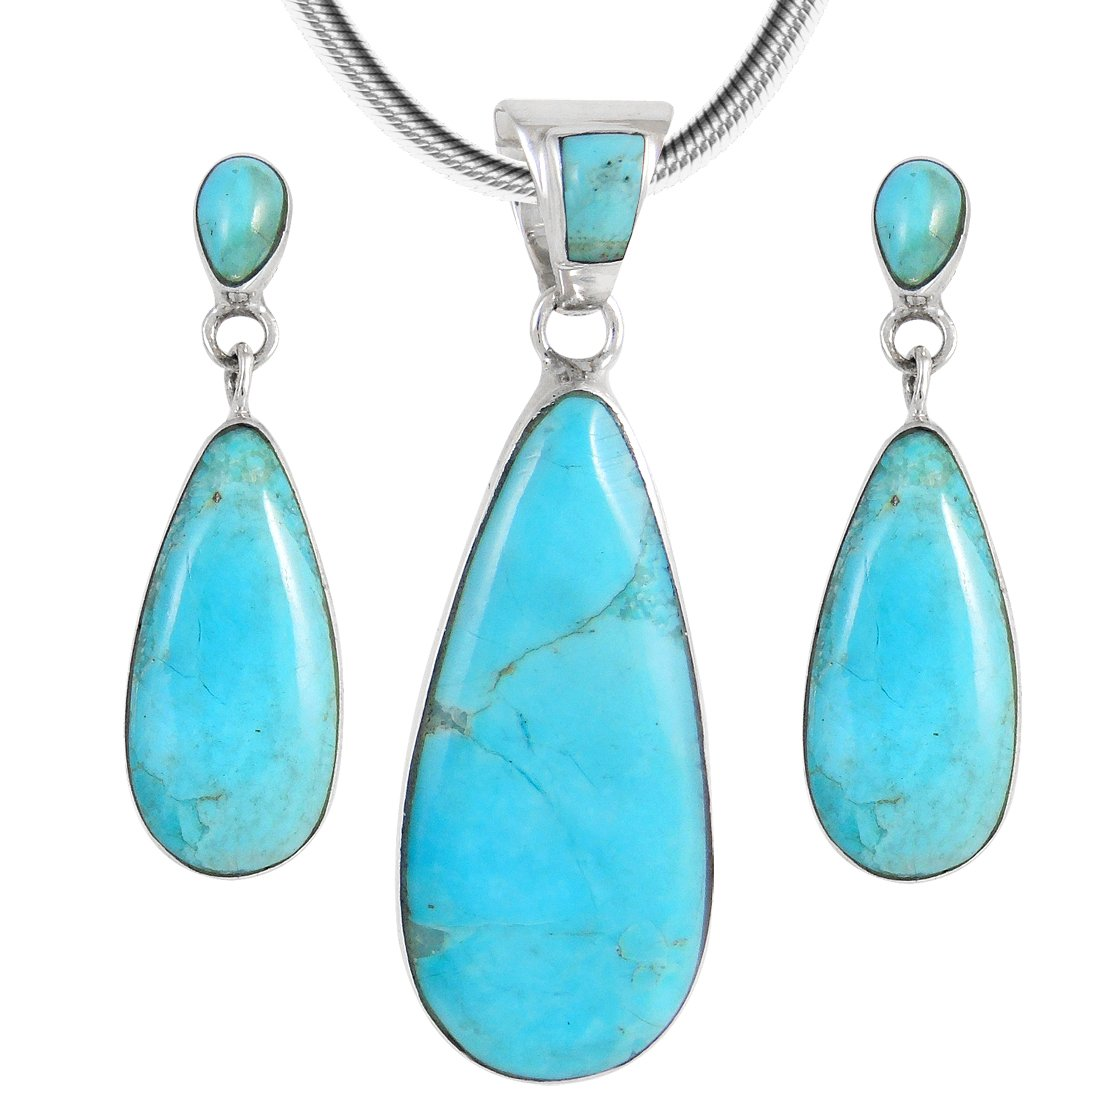 Matching Turquoise Set in 925 Sterling Silver (Pendant, Earrings, Necklace 20'') Genuine Turquoise (Turquoise)